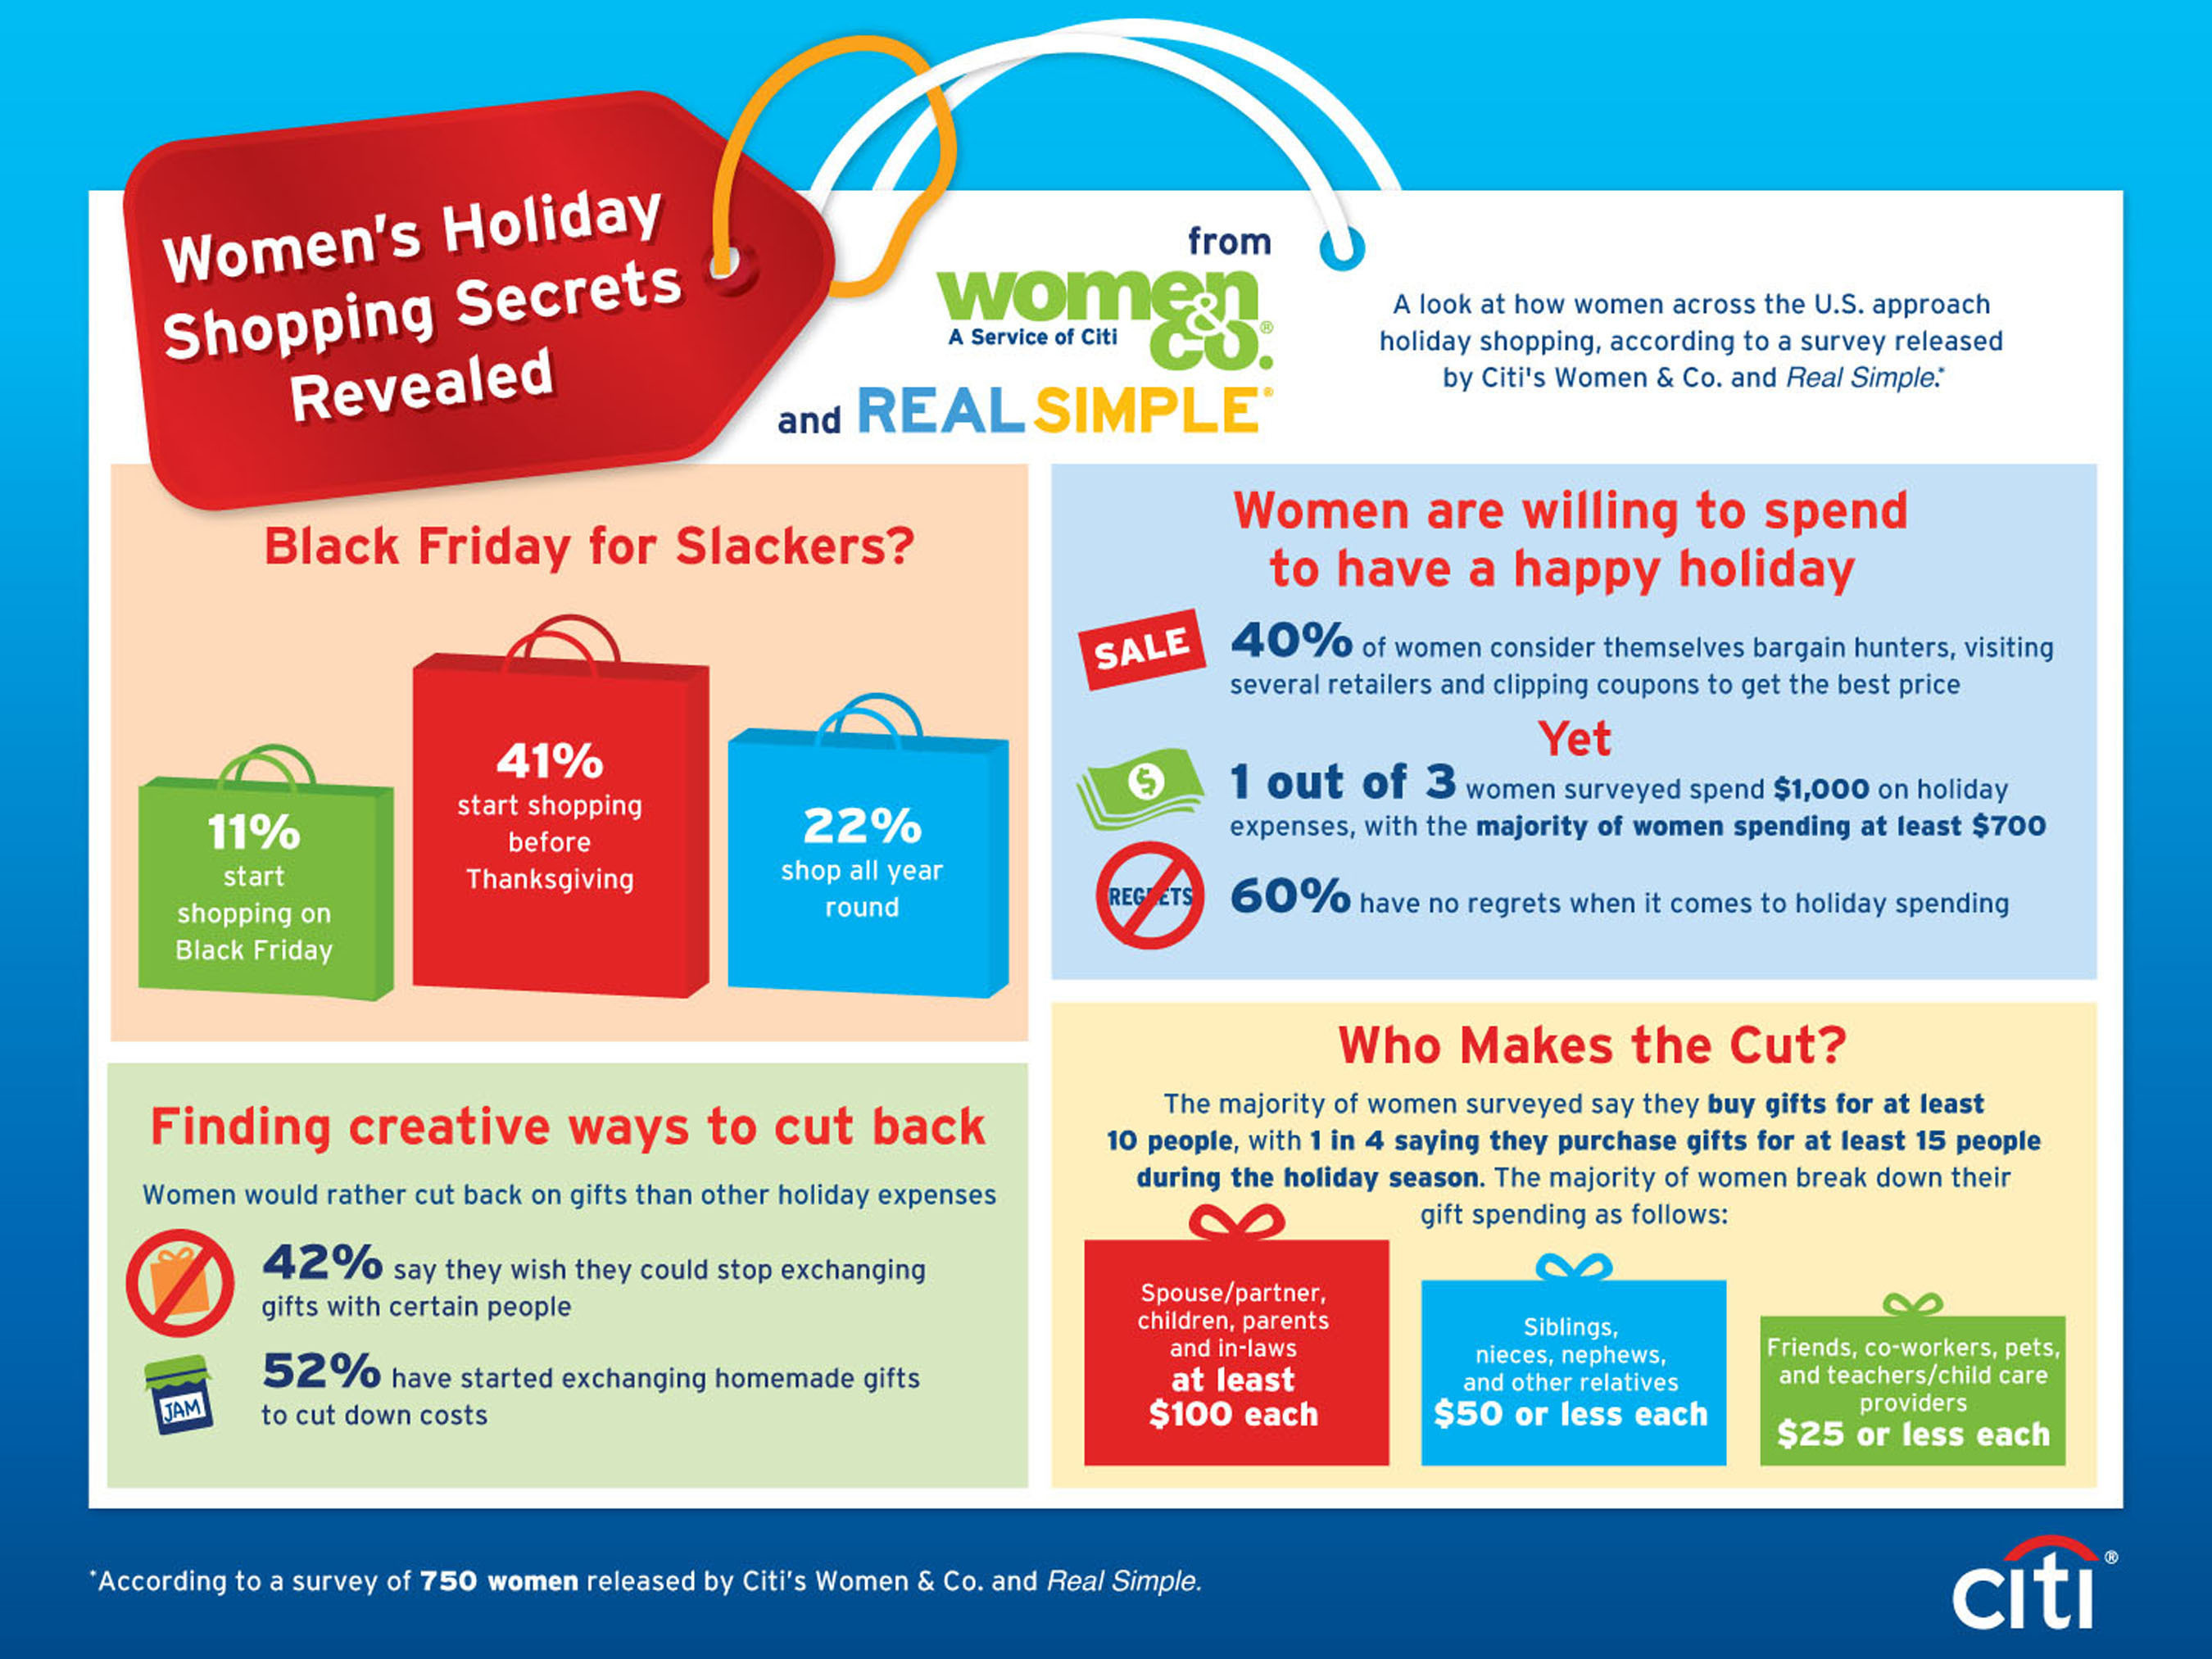 Women's Holiday Shopping Secrets Revealed: Women Shopping Early -- Even Year-Round -- for Holiday